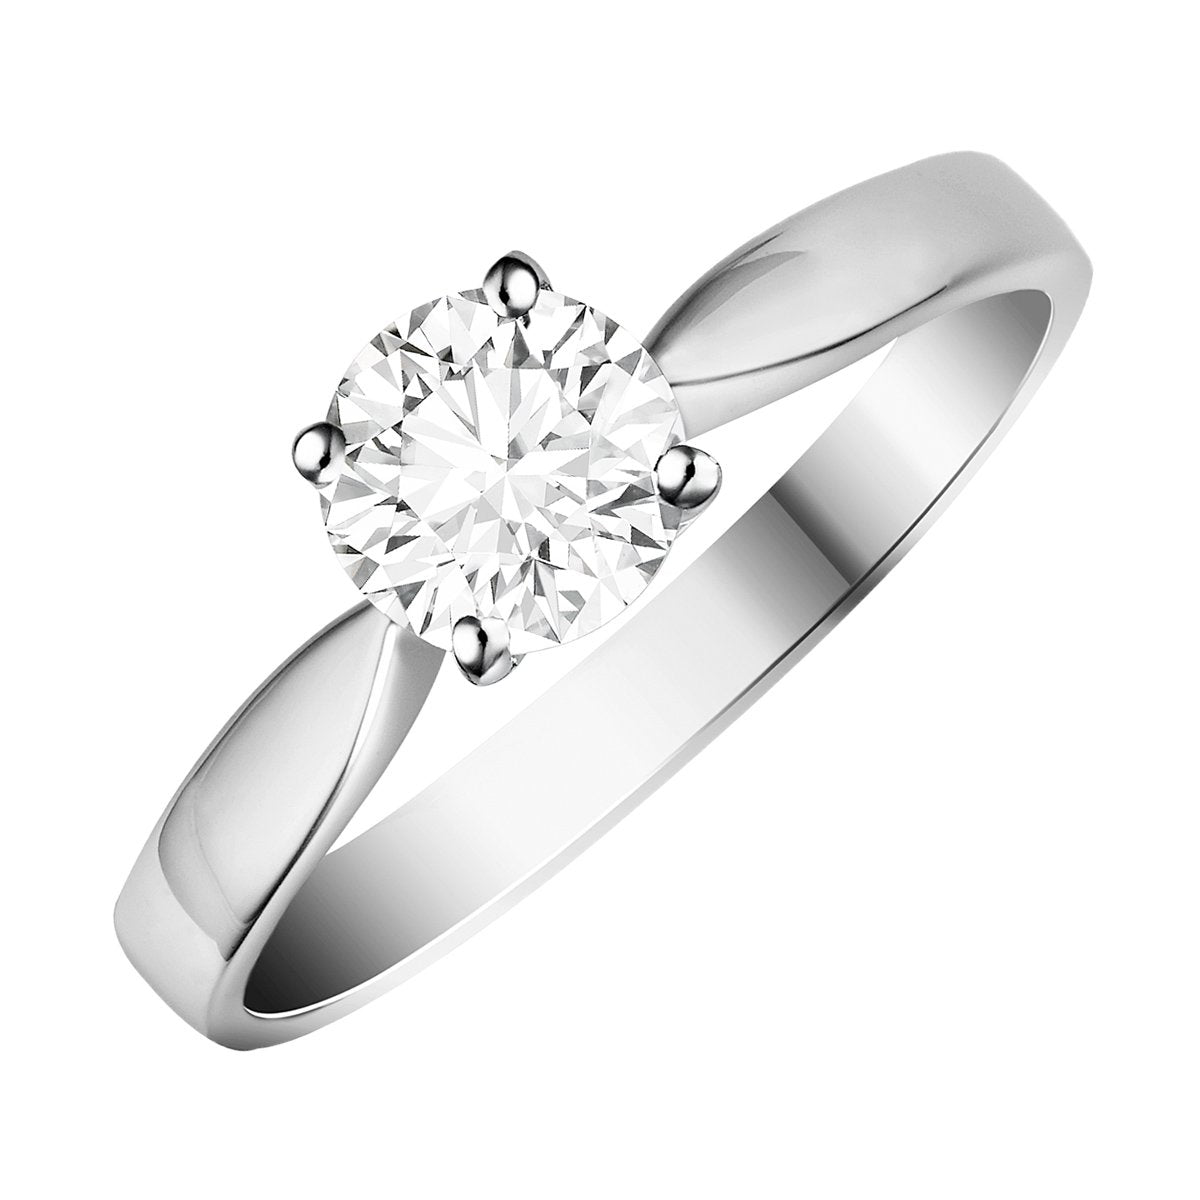 Diamond four-claw solitaire ring